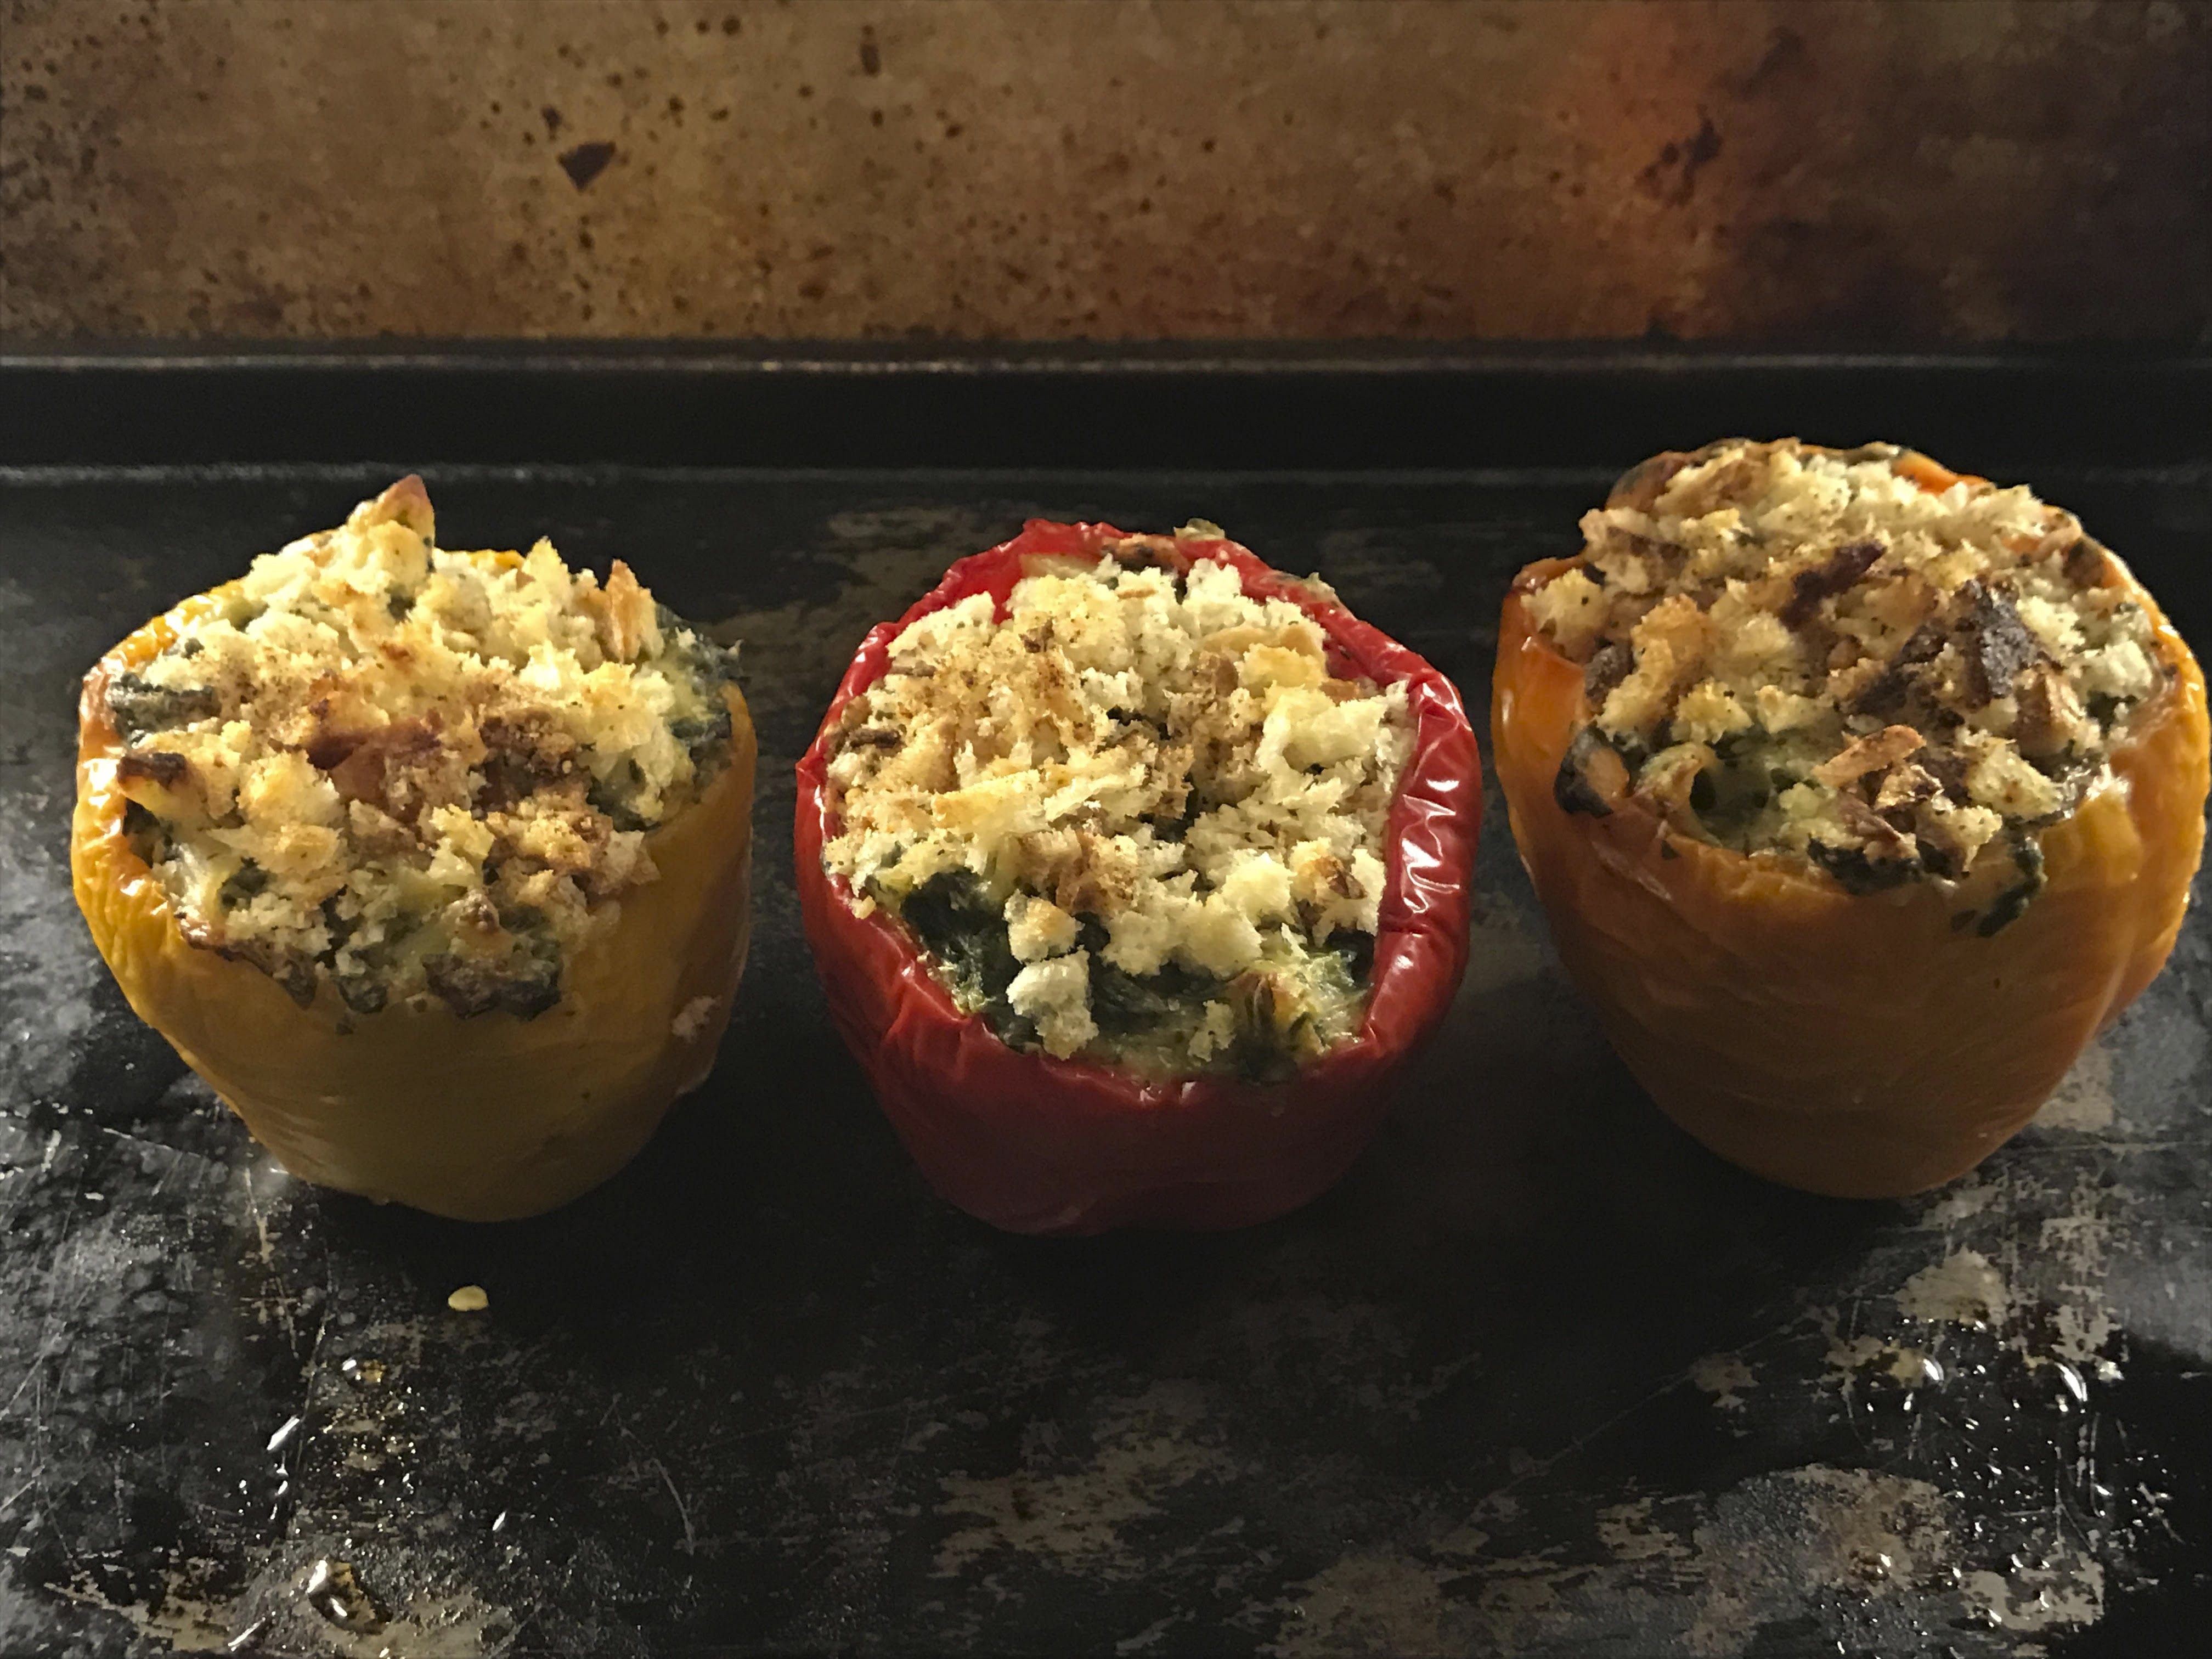 three bell peppers (two red, one yellow), stuffed with mac and cheese